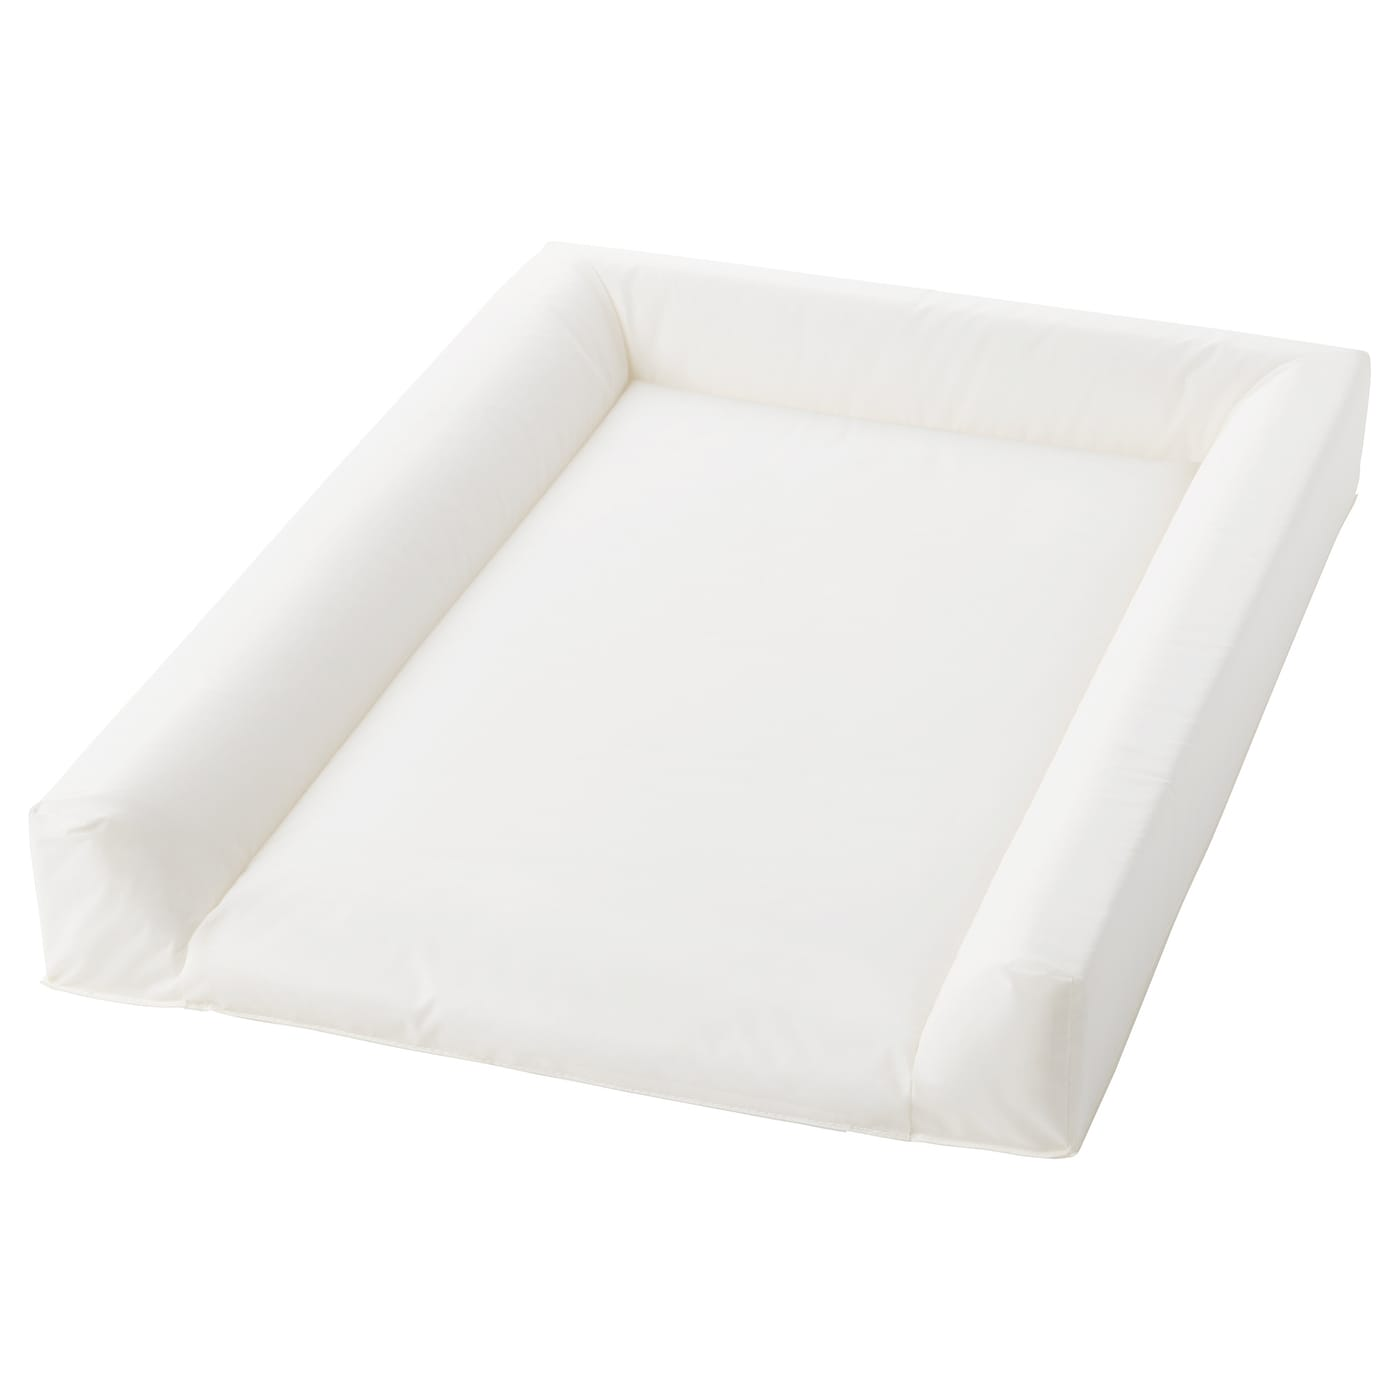 IKEA VÄDRA babycare mat The three raised edges increase safety and reduce the risk of falls.